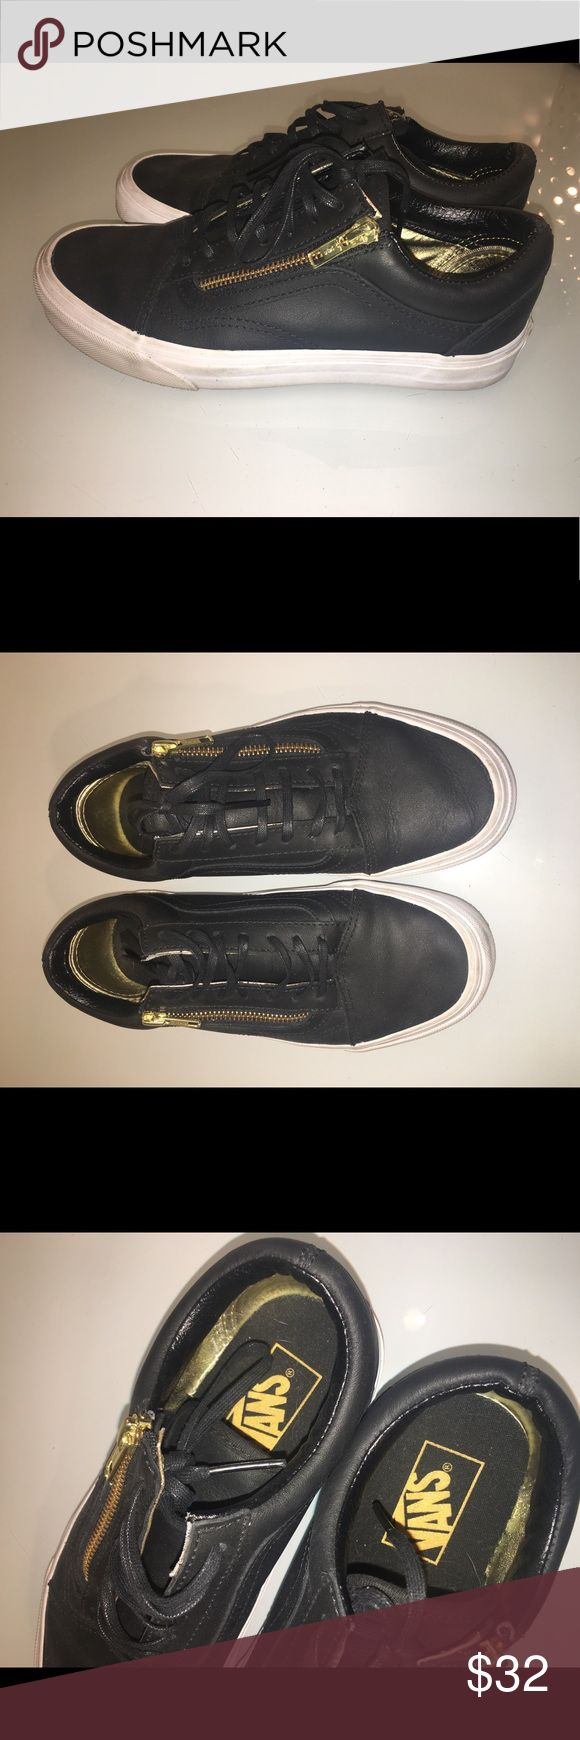 Vans Old Skool Zip Black Leather - 5M/ women's 7 Worn maybe three times. Super cute vans with coated laces, black leather with gold zip. If it weren't for the scuffs on the white rubber sidewall (pictured), they'd look brand new. Scuffs could probably be removed with Magic Eraser. Smoke free home Vans Shoes Sneakers